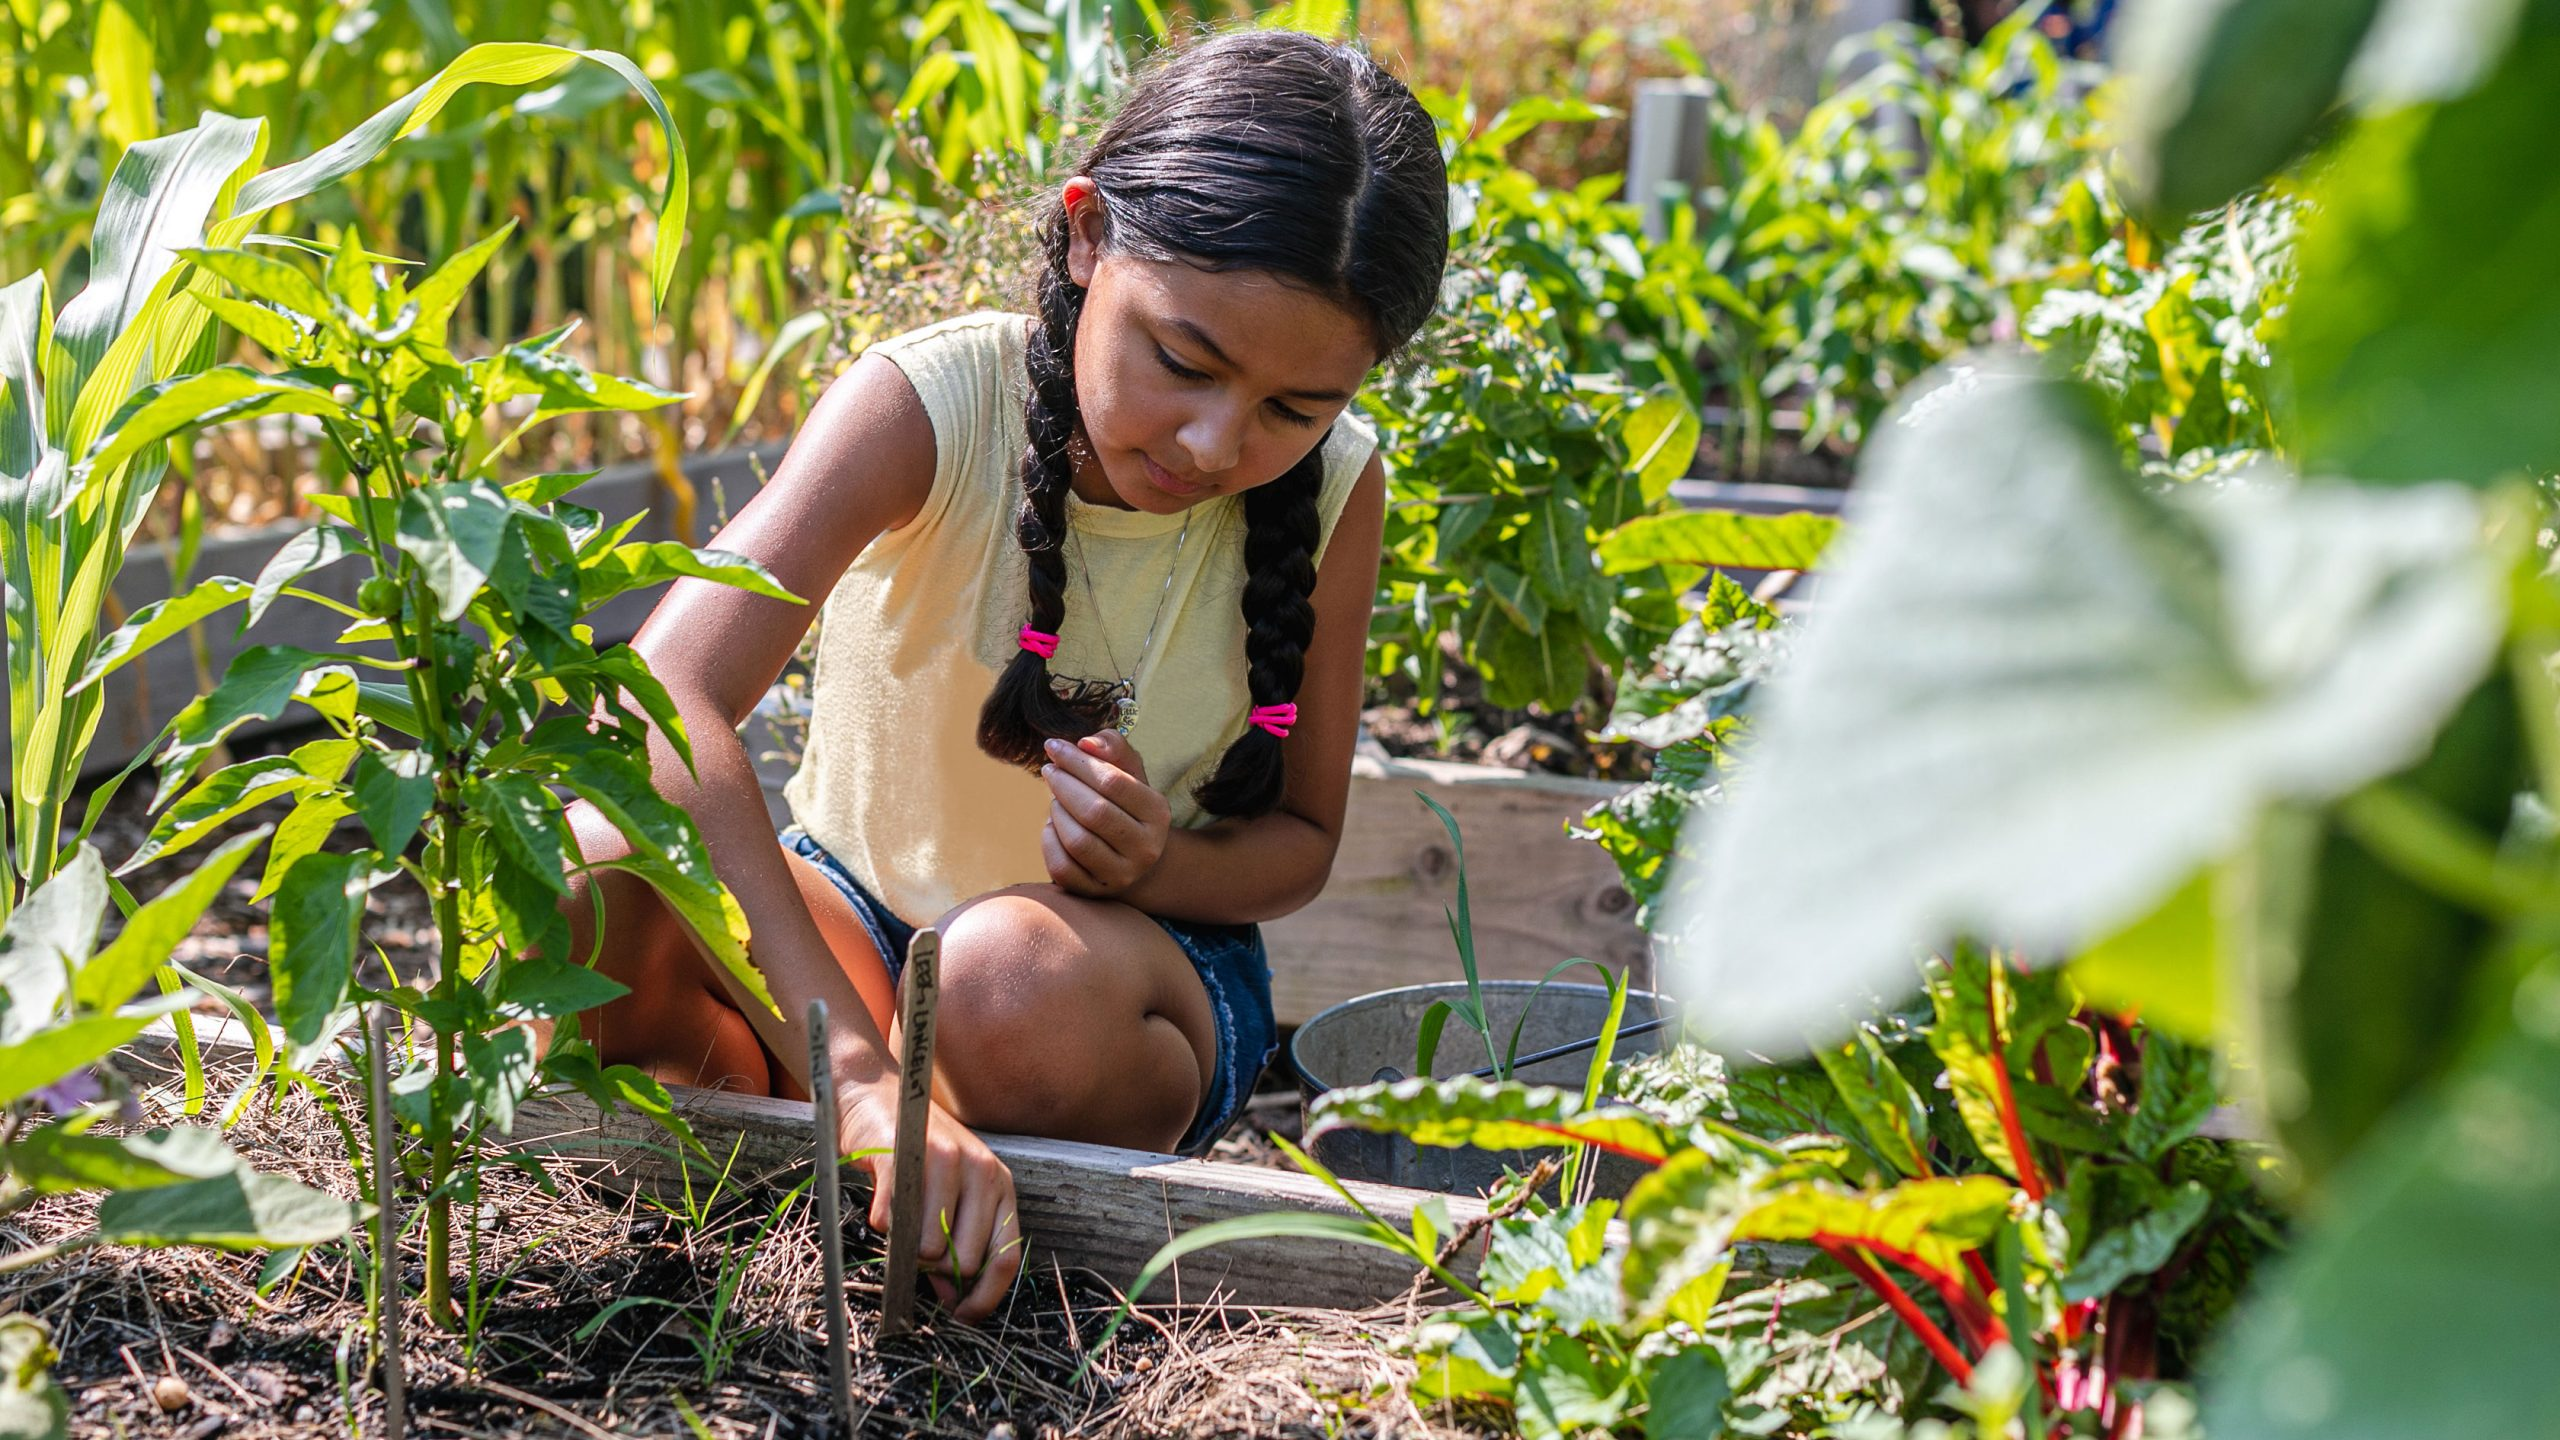 A girl with pigtails digs in a vegetable bed in the Edible Academy